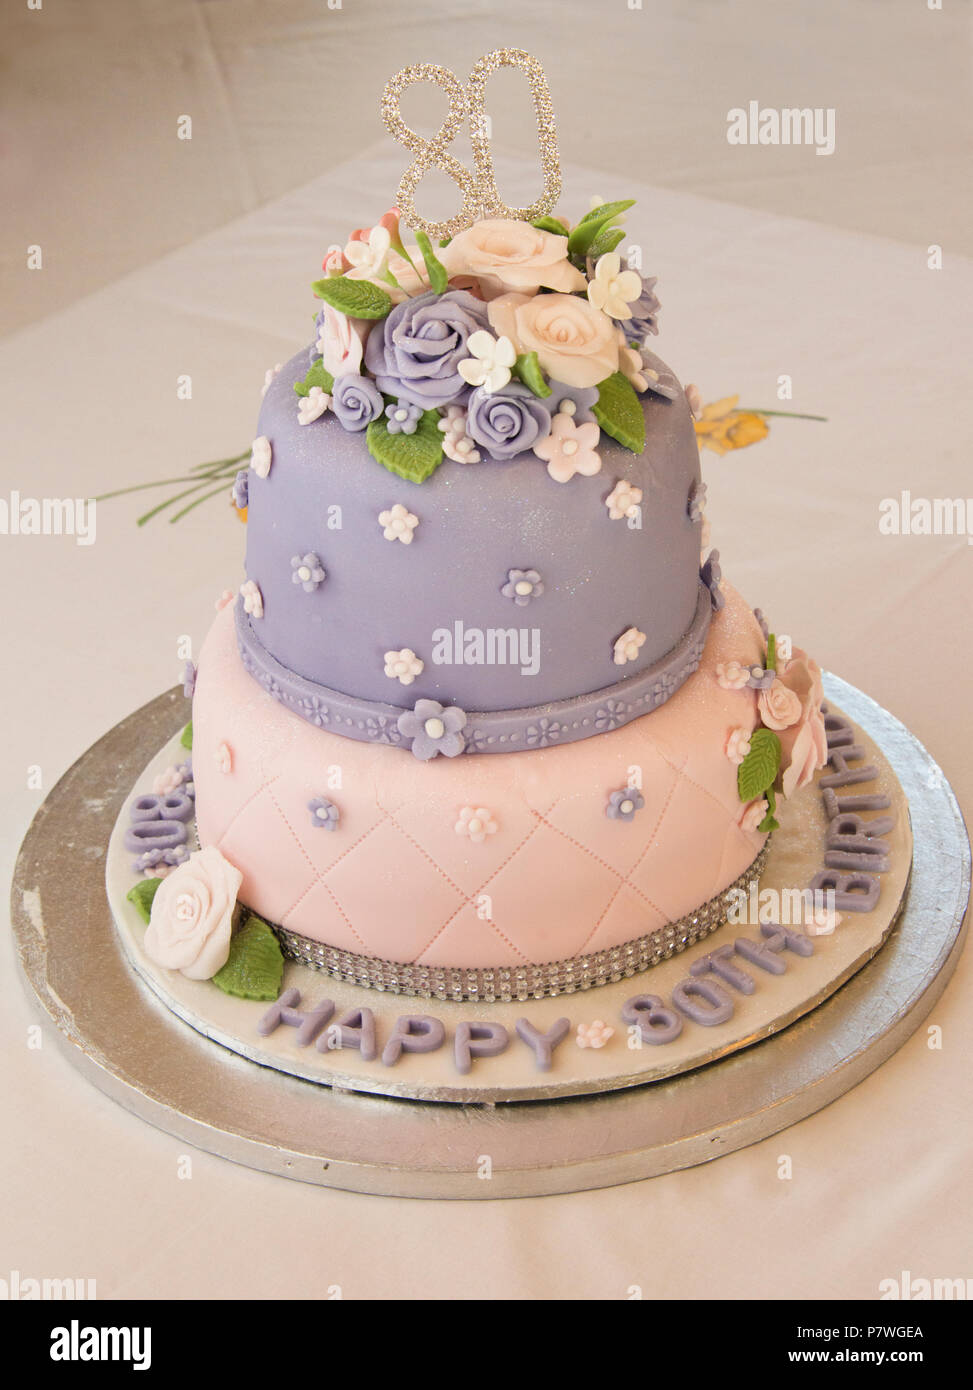 Two Tier Decorated 80th Birthday Cake Stock Photo 211388754 Alamy